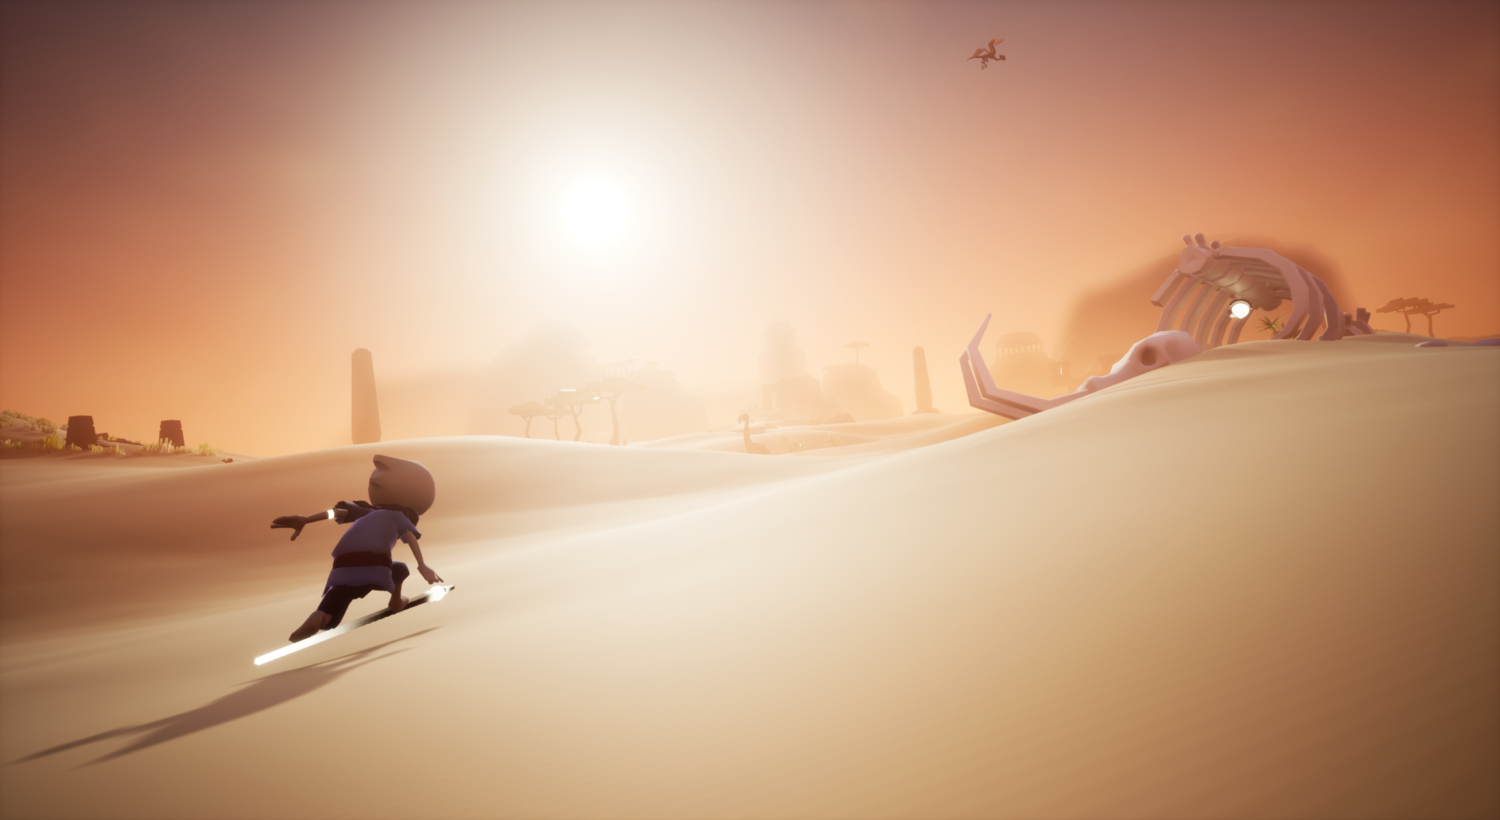 A still from the Omno game. The main character is surfing across a sand dune. There is a huge skeleton in the distance. The scene is lit in bright warm light, making the desert setting clear.